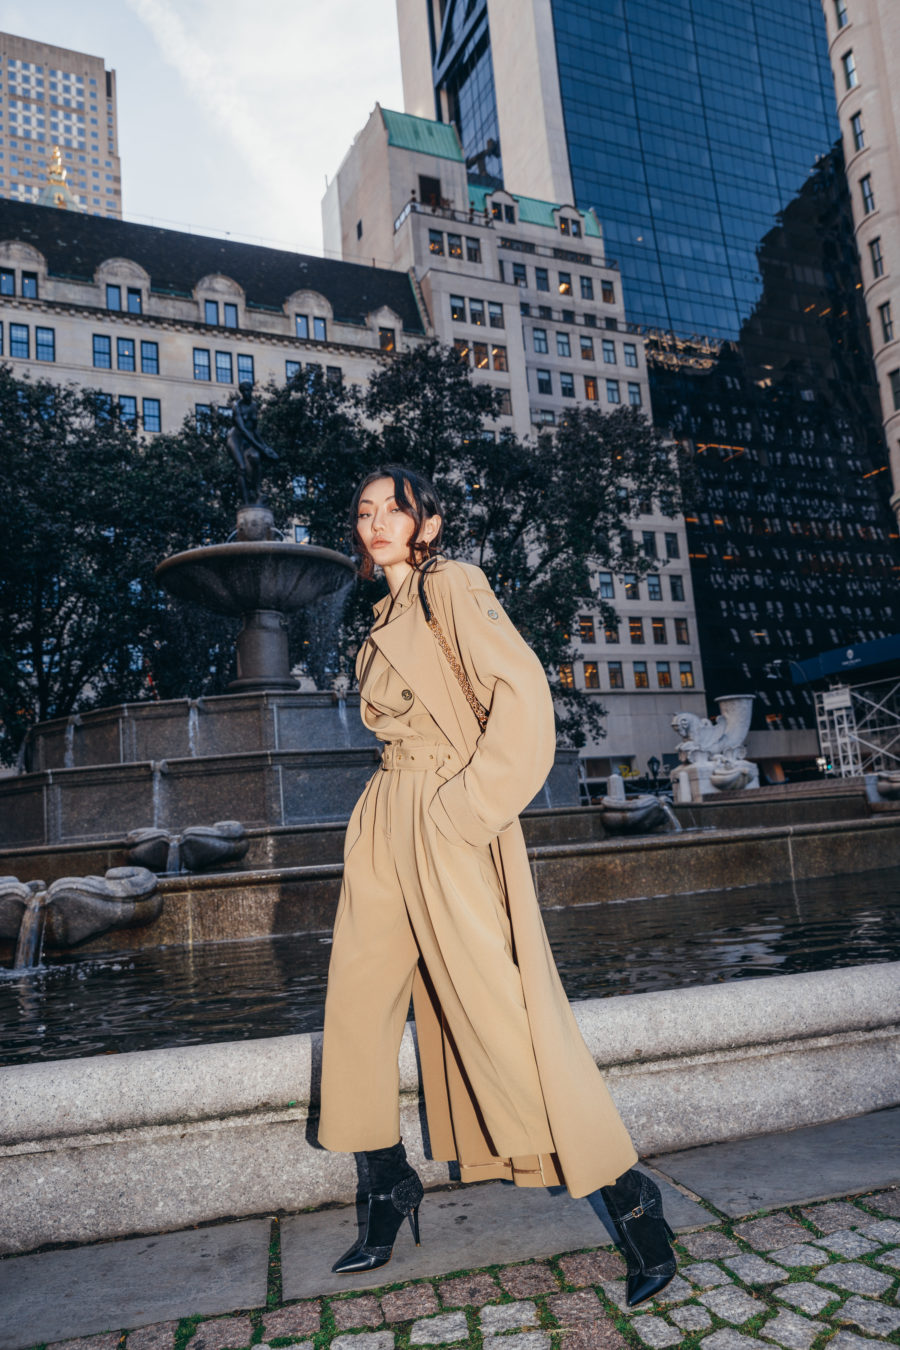 jessica wang wears trendy winter coats - michael kors trench coat // Jessica Wang - Notjessfashion.com